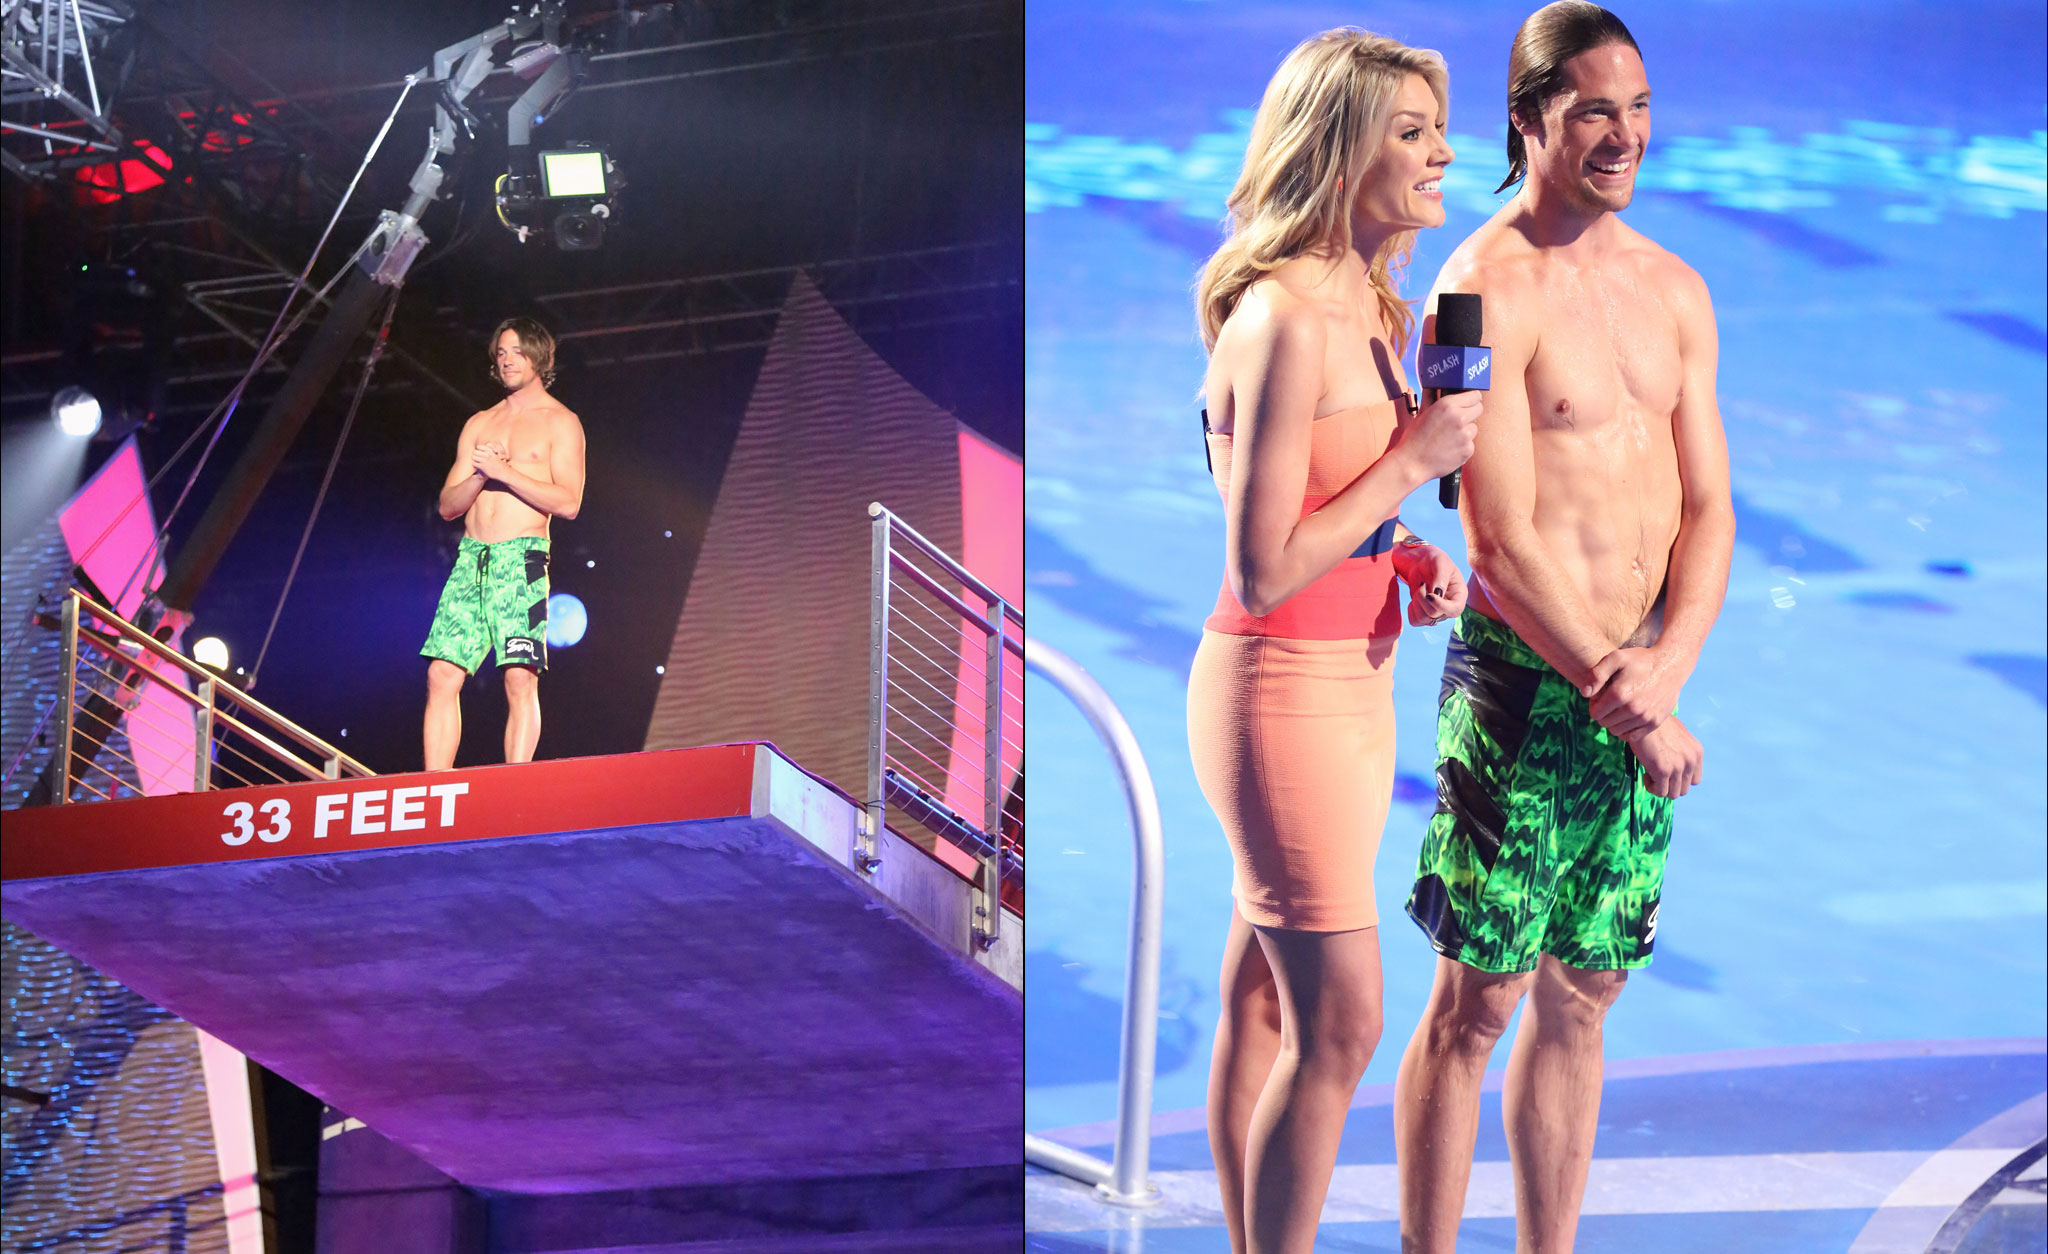 Skier Rory Bushfield (and host Charissa Thompson) on set of Splash, which premiered last week.